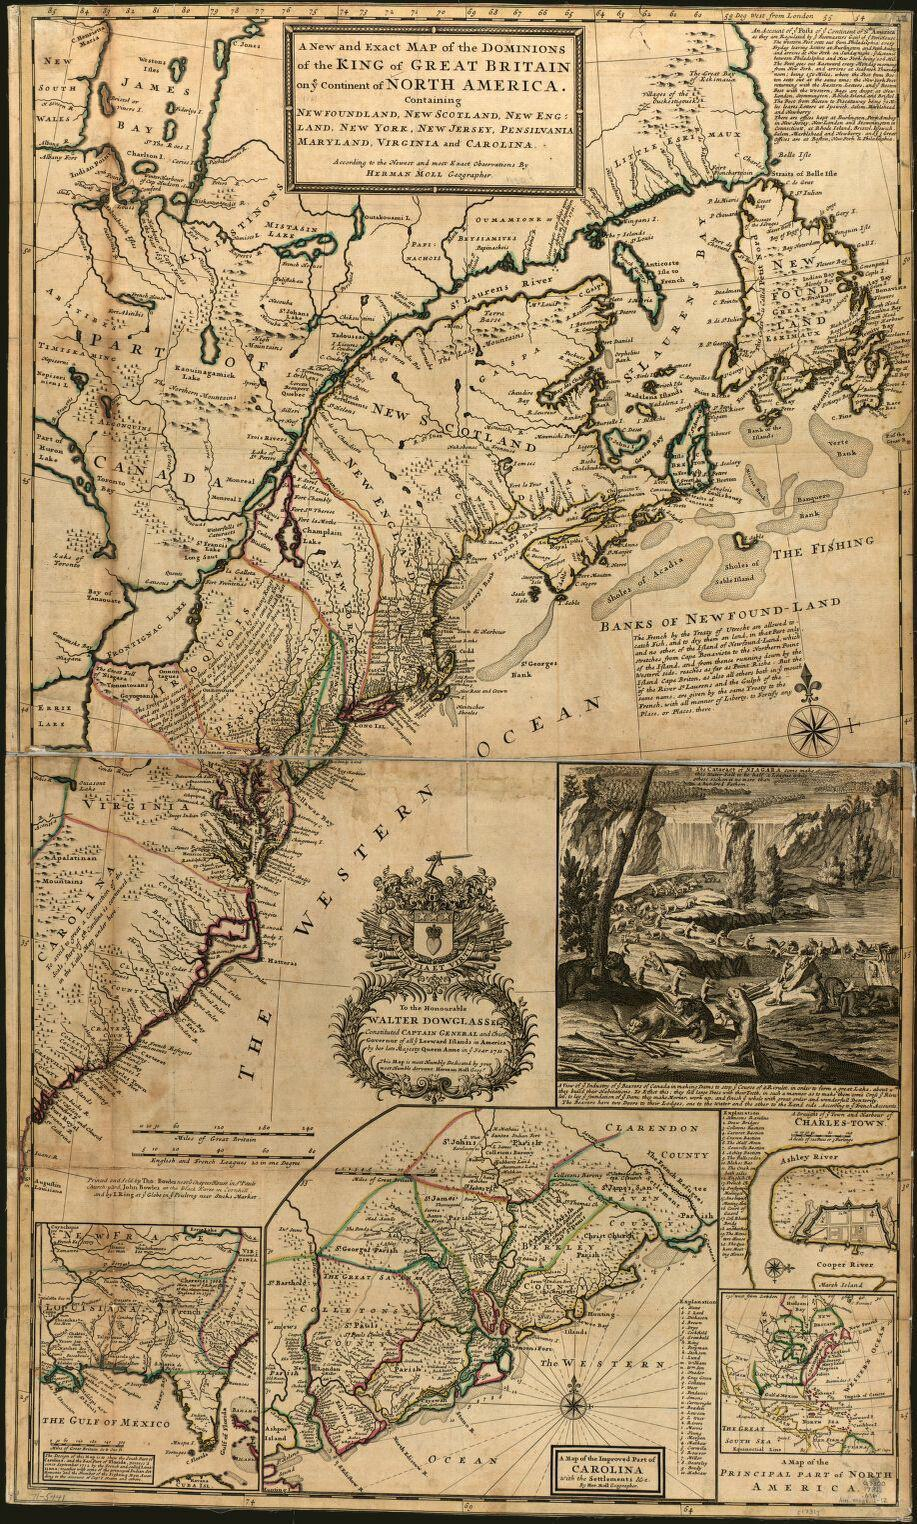 Herman Moll, Thomas Bowles, and John Bowles. A new and exact map of the dominions of the King of Great Britain on ye continent of North America, containing Newfoundland, New Scotland, New England, New York, New Jersey, Pensilvania, Maryland, Virginia and Carolina. London, 1731. Library of Congress. https://www.loc.gov/item/gm71005441/.